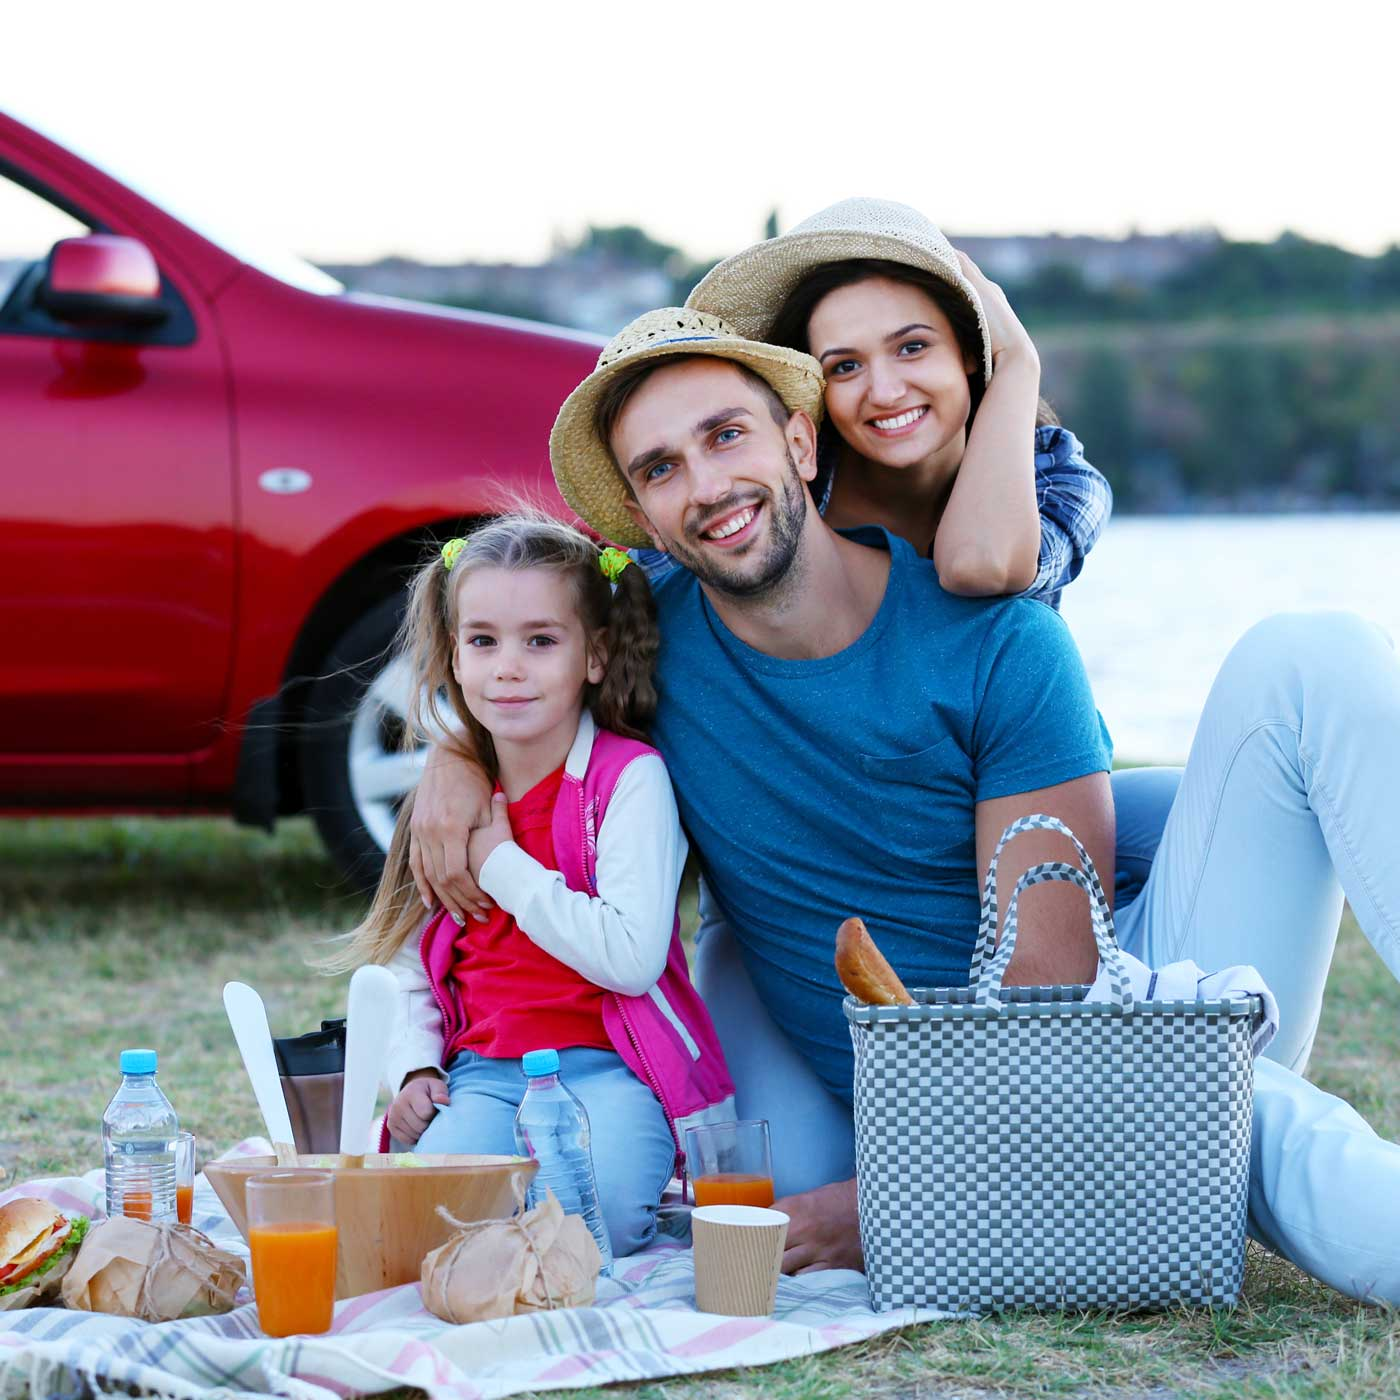 How to Master a Rest Stop Picnic